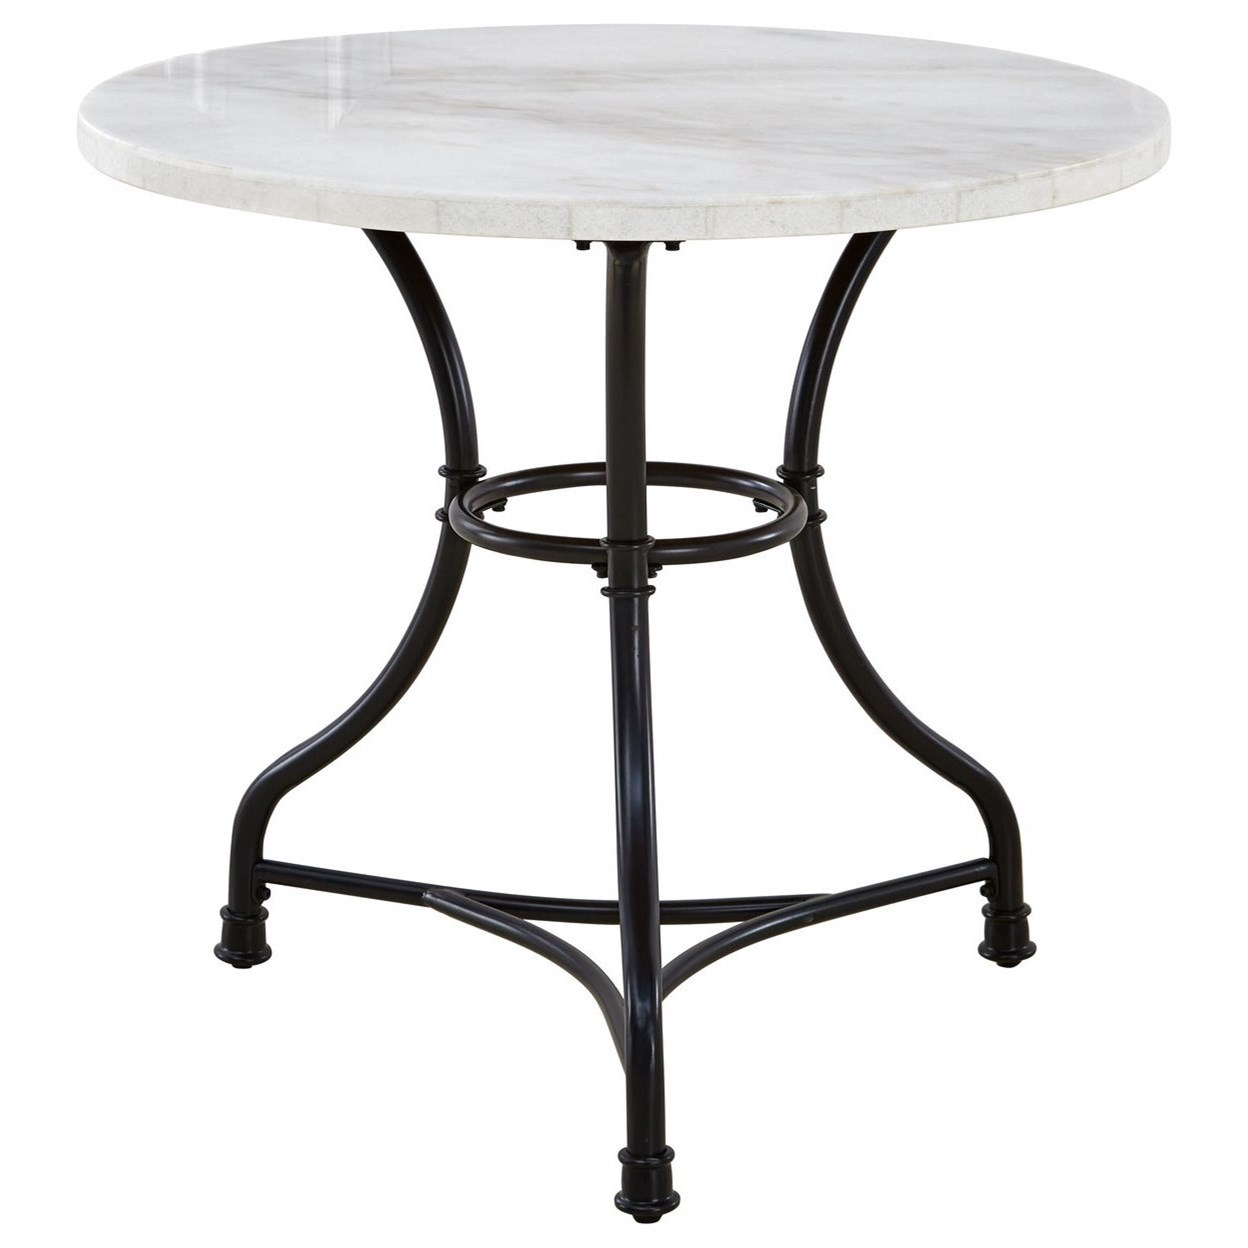 Claire Round Bistro Table by Steve Silver at Van Hill Furniture